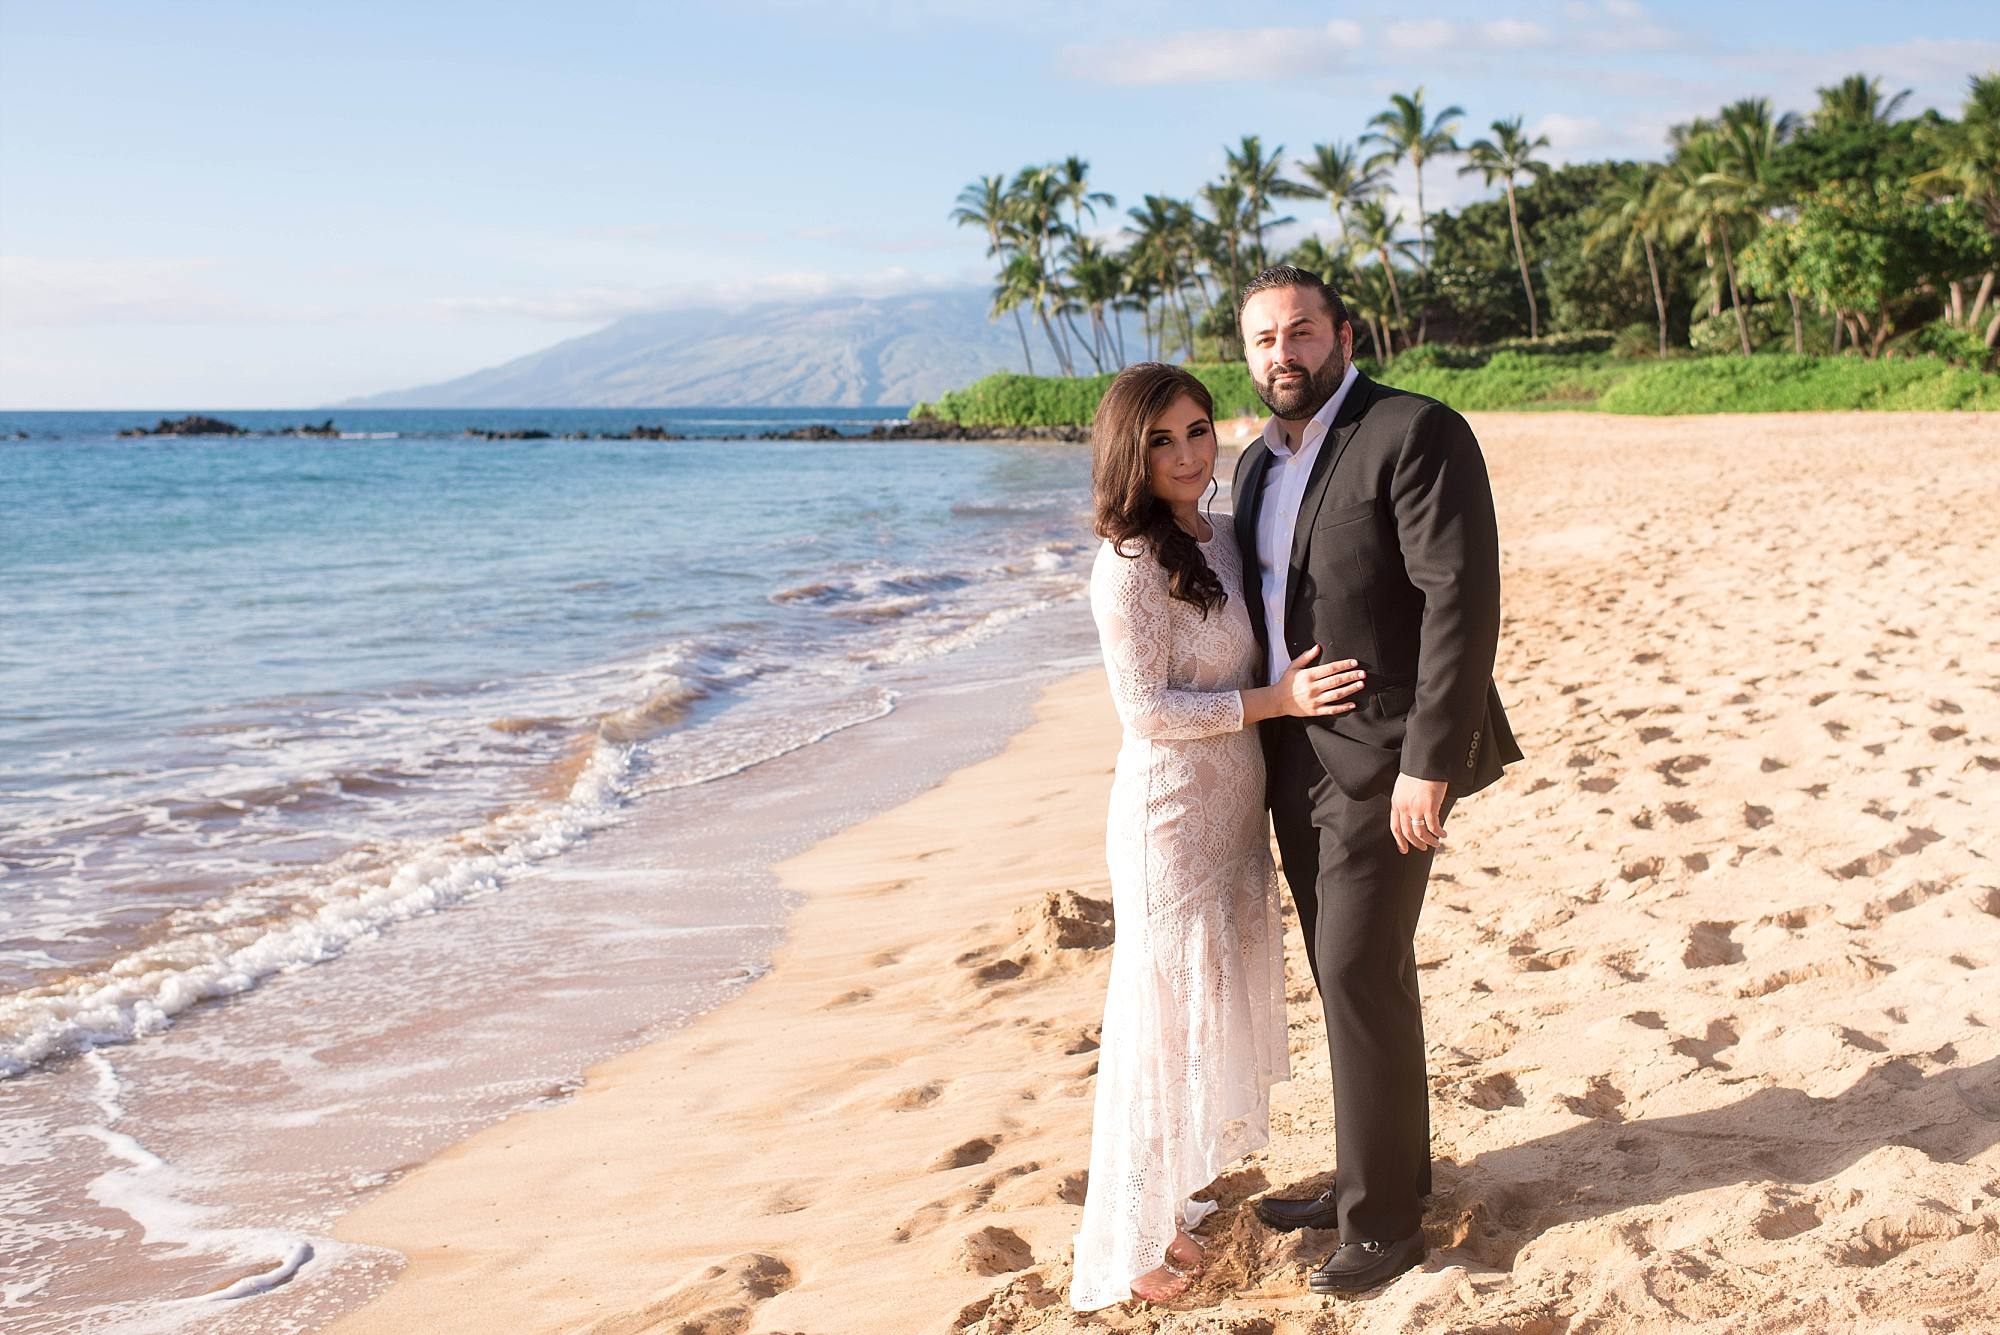 Couple in wedding attire standing on Maui beach